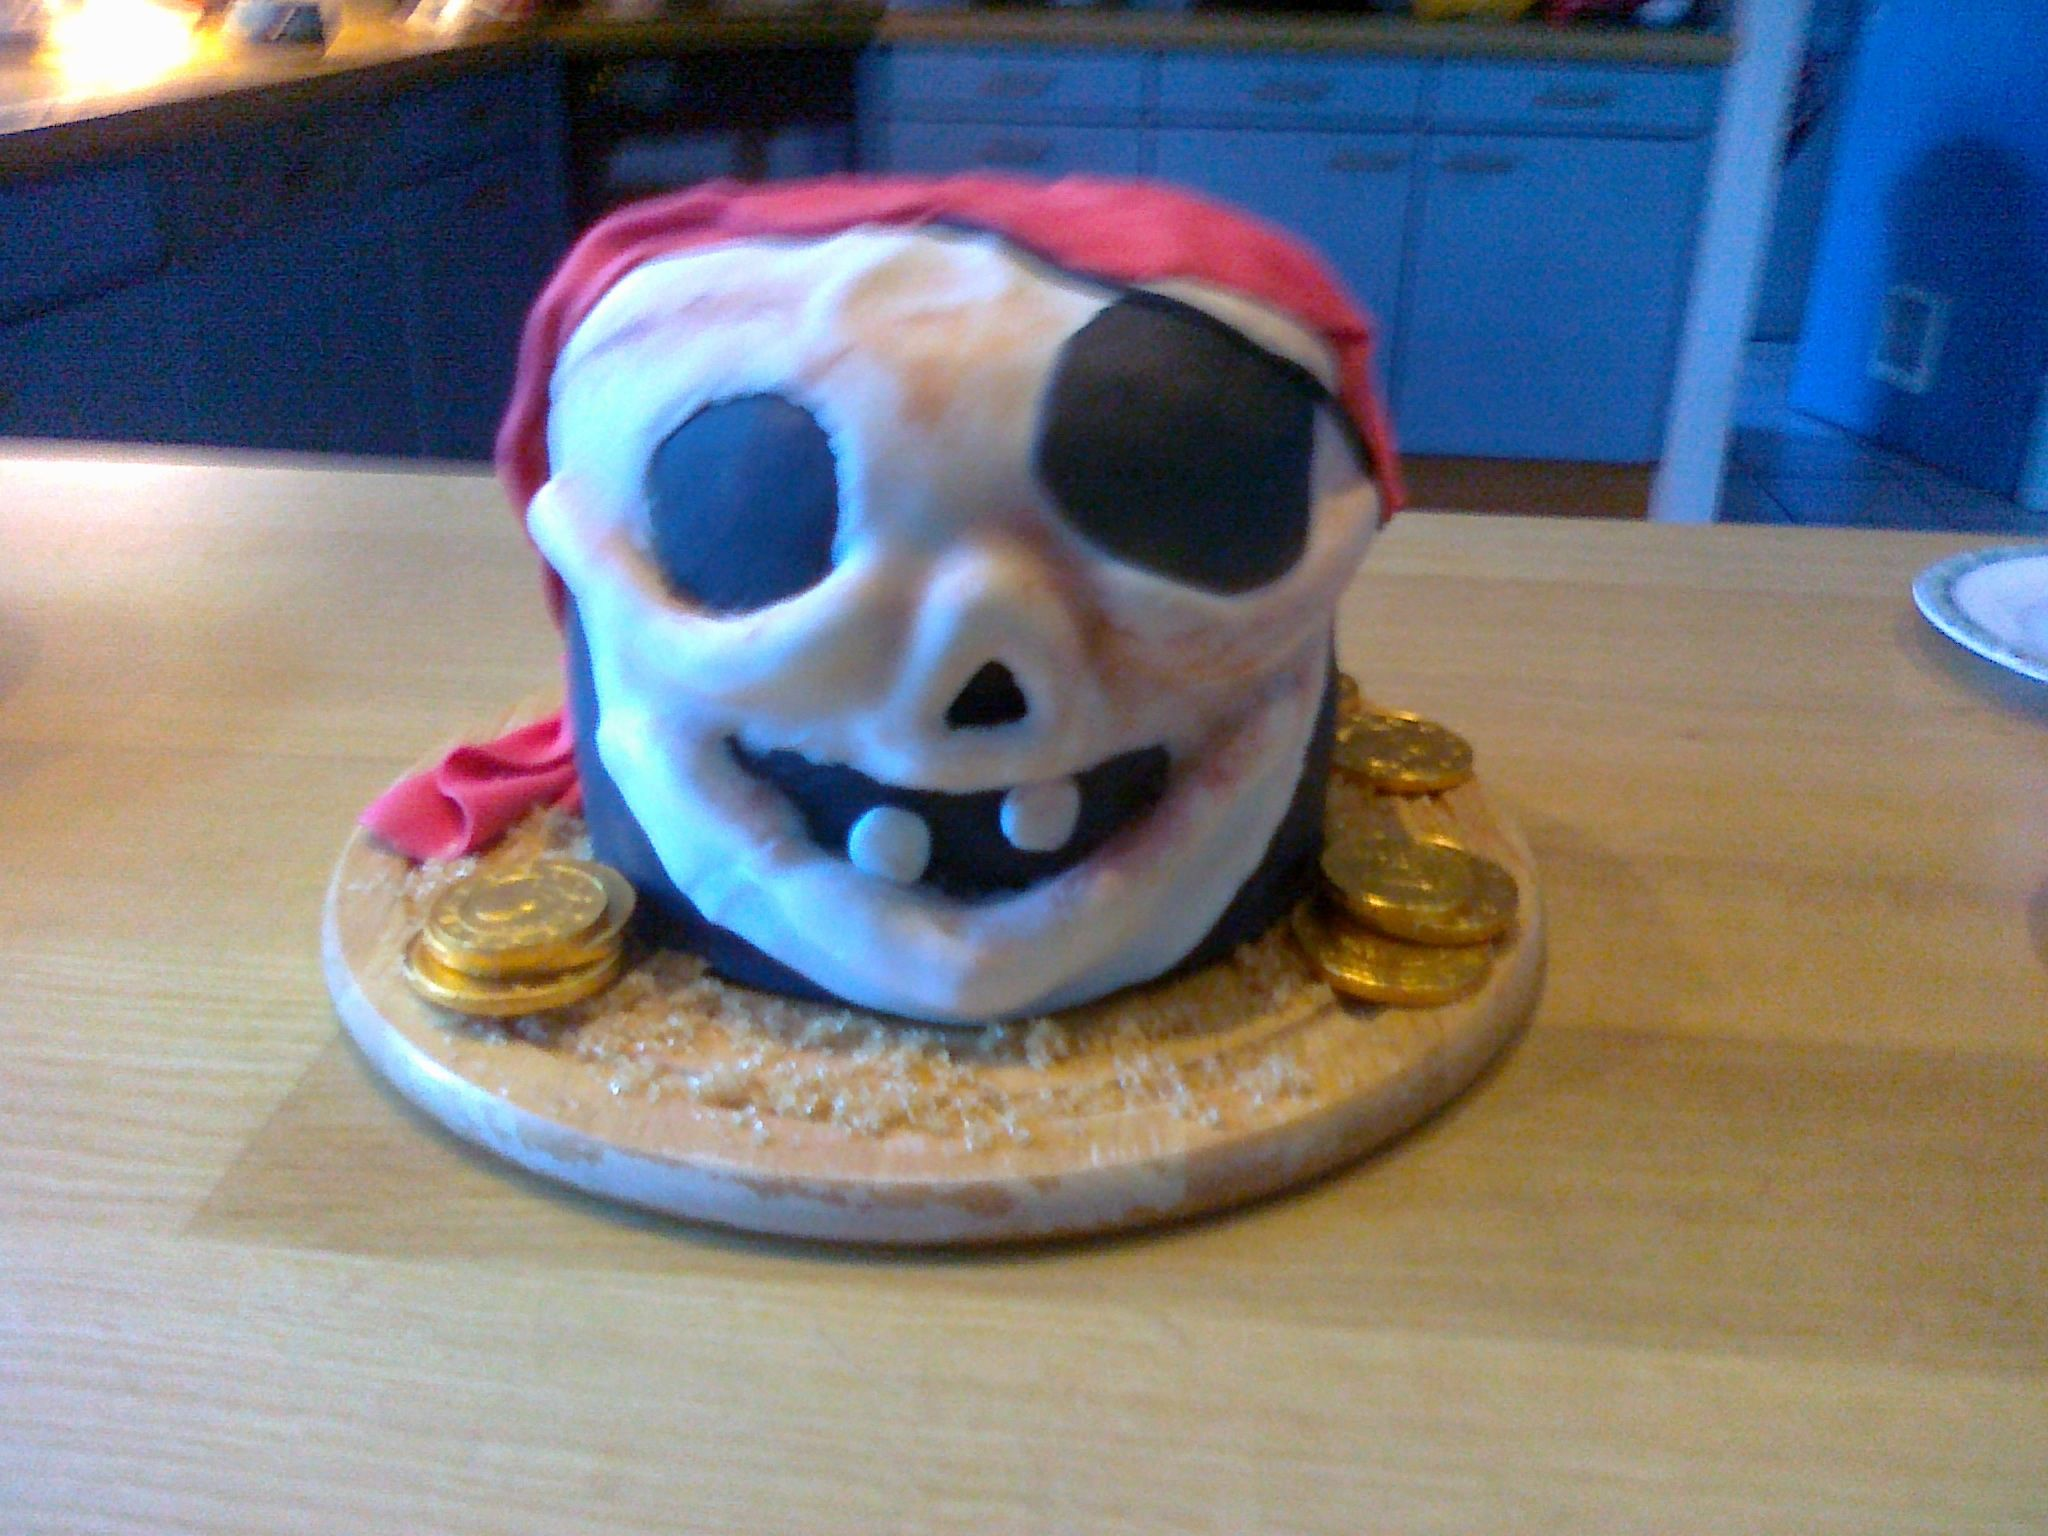 Piratecake. Made for my brother's birthday. Filled with mocca, chocolate, caramel and crunchies.